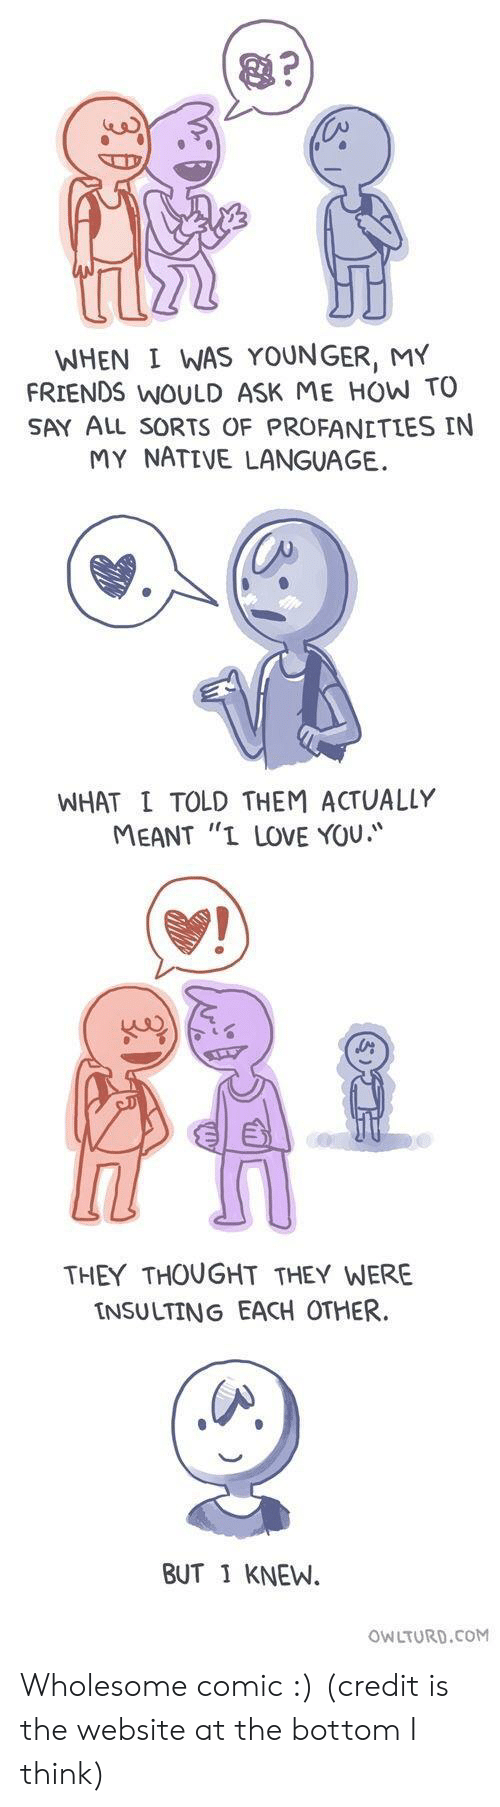 "Friends, Love, and I Love You: WHEN I WAS YOUNGER, MY  FRIENDS WOULD ASK ME HOW TO  SAY ALL sORTS OF PROFANETLES IN  MY NATIVE LANGUAGE.  WHAT L TOLD THEM ACTUALLY  MEANT ""I LOVE YOU.  THEY THOUGHT THEY WERE  INSULTING EACH OTHER  BUT 1 KNEW.  OWLTURD.CoM Wholesome comic :) (credit is the website at the bottom I think)"